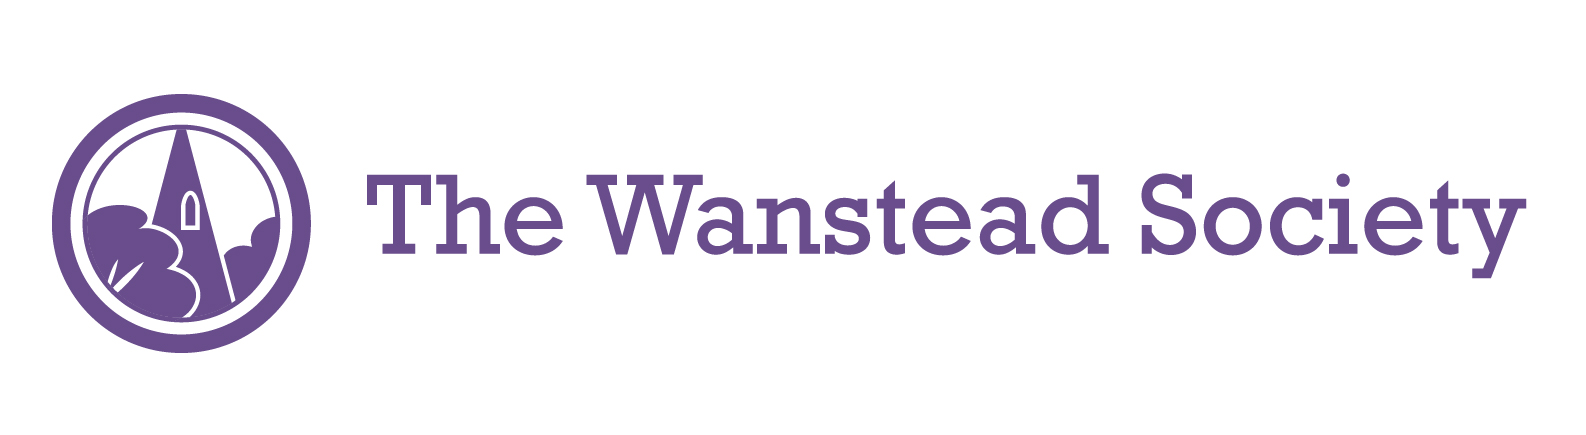 The Wanstead Society